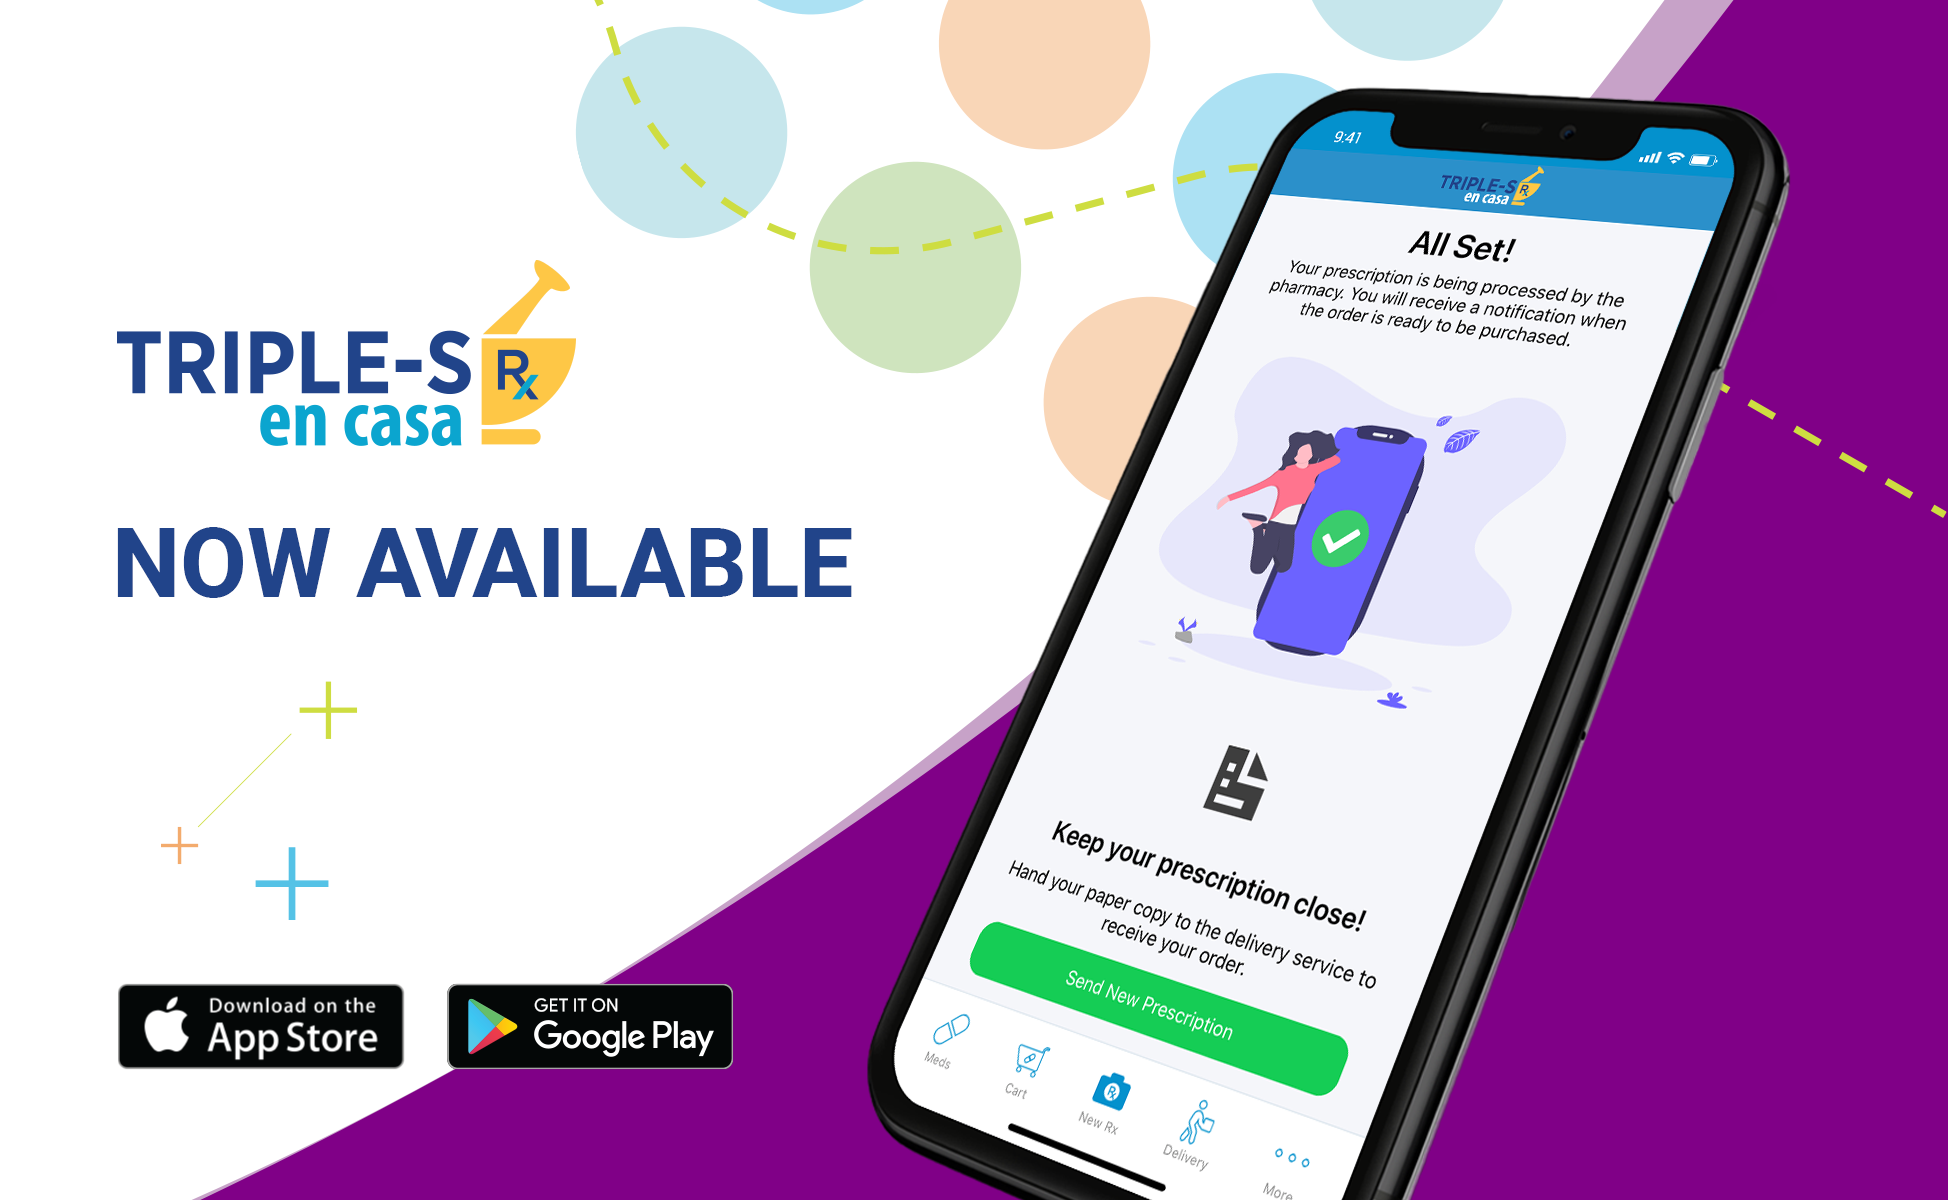 Abarca_Triple S en Casa Home Delivery Application Launch